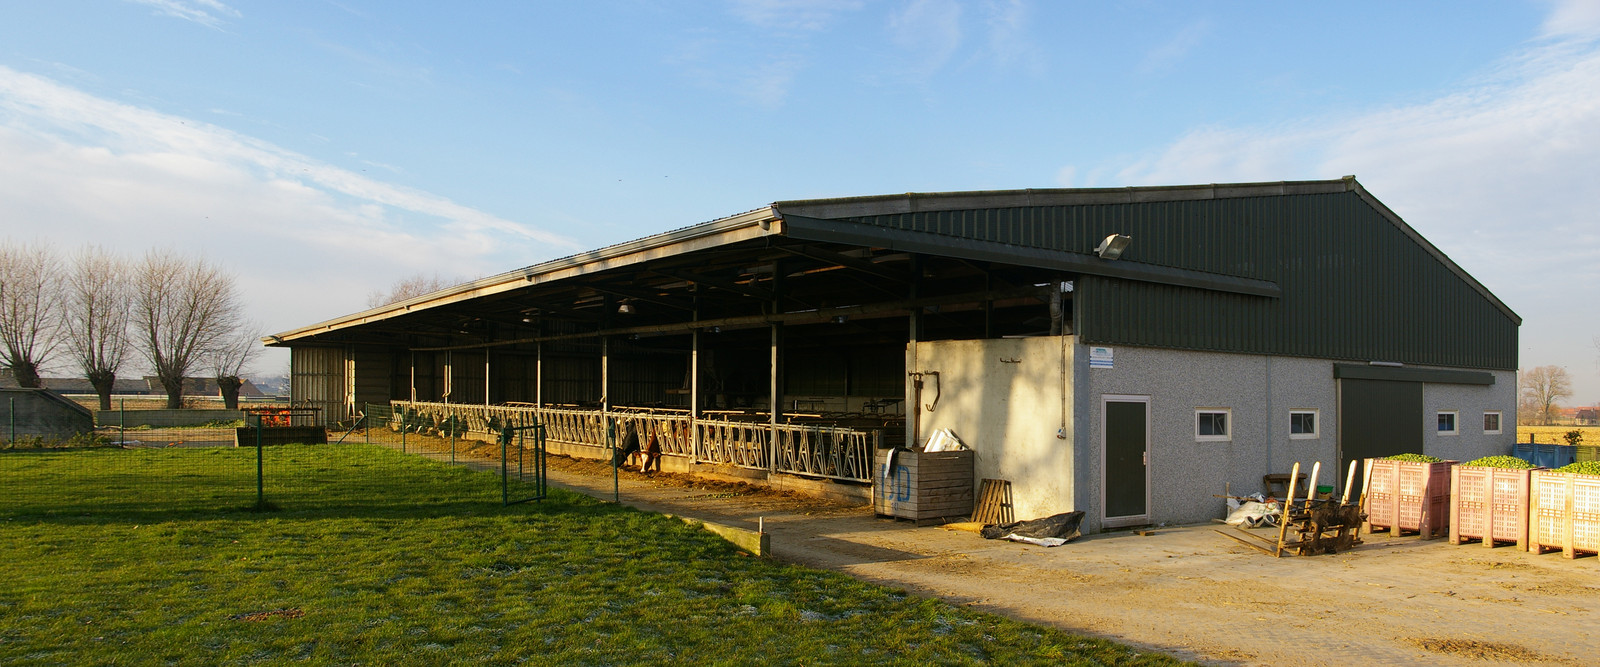 Cattle stable